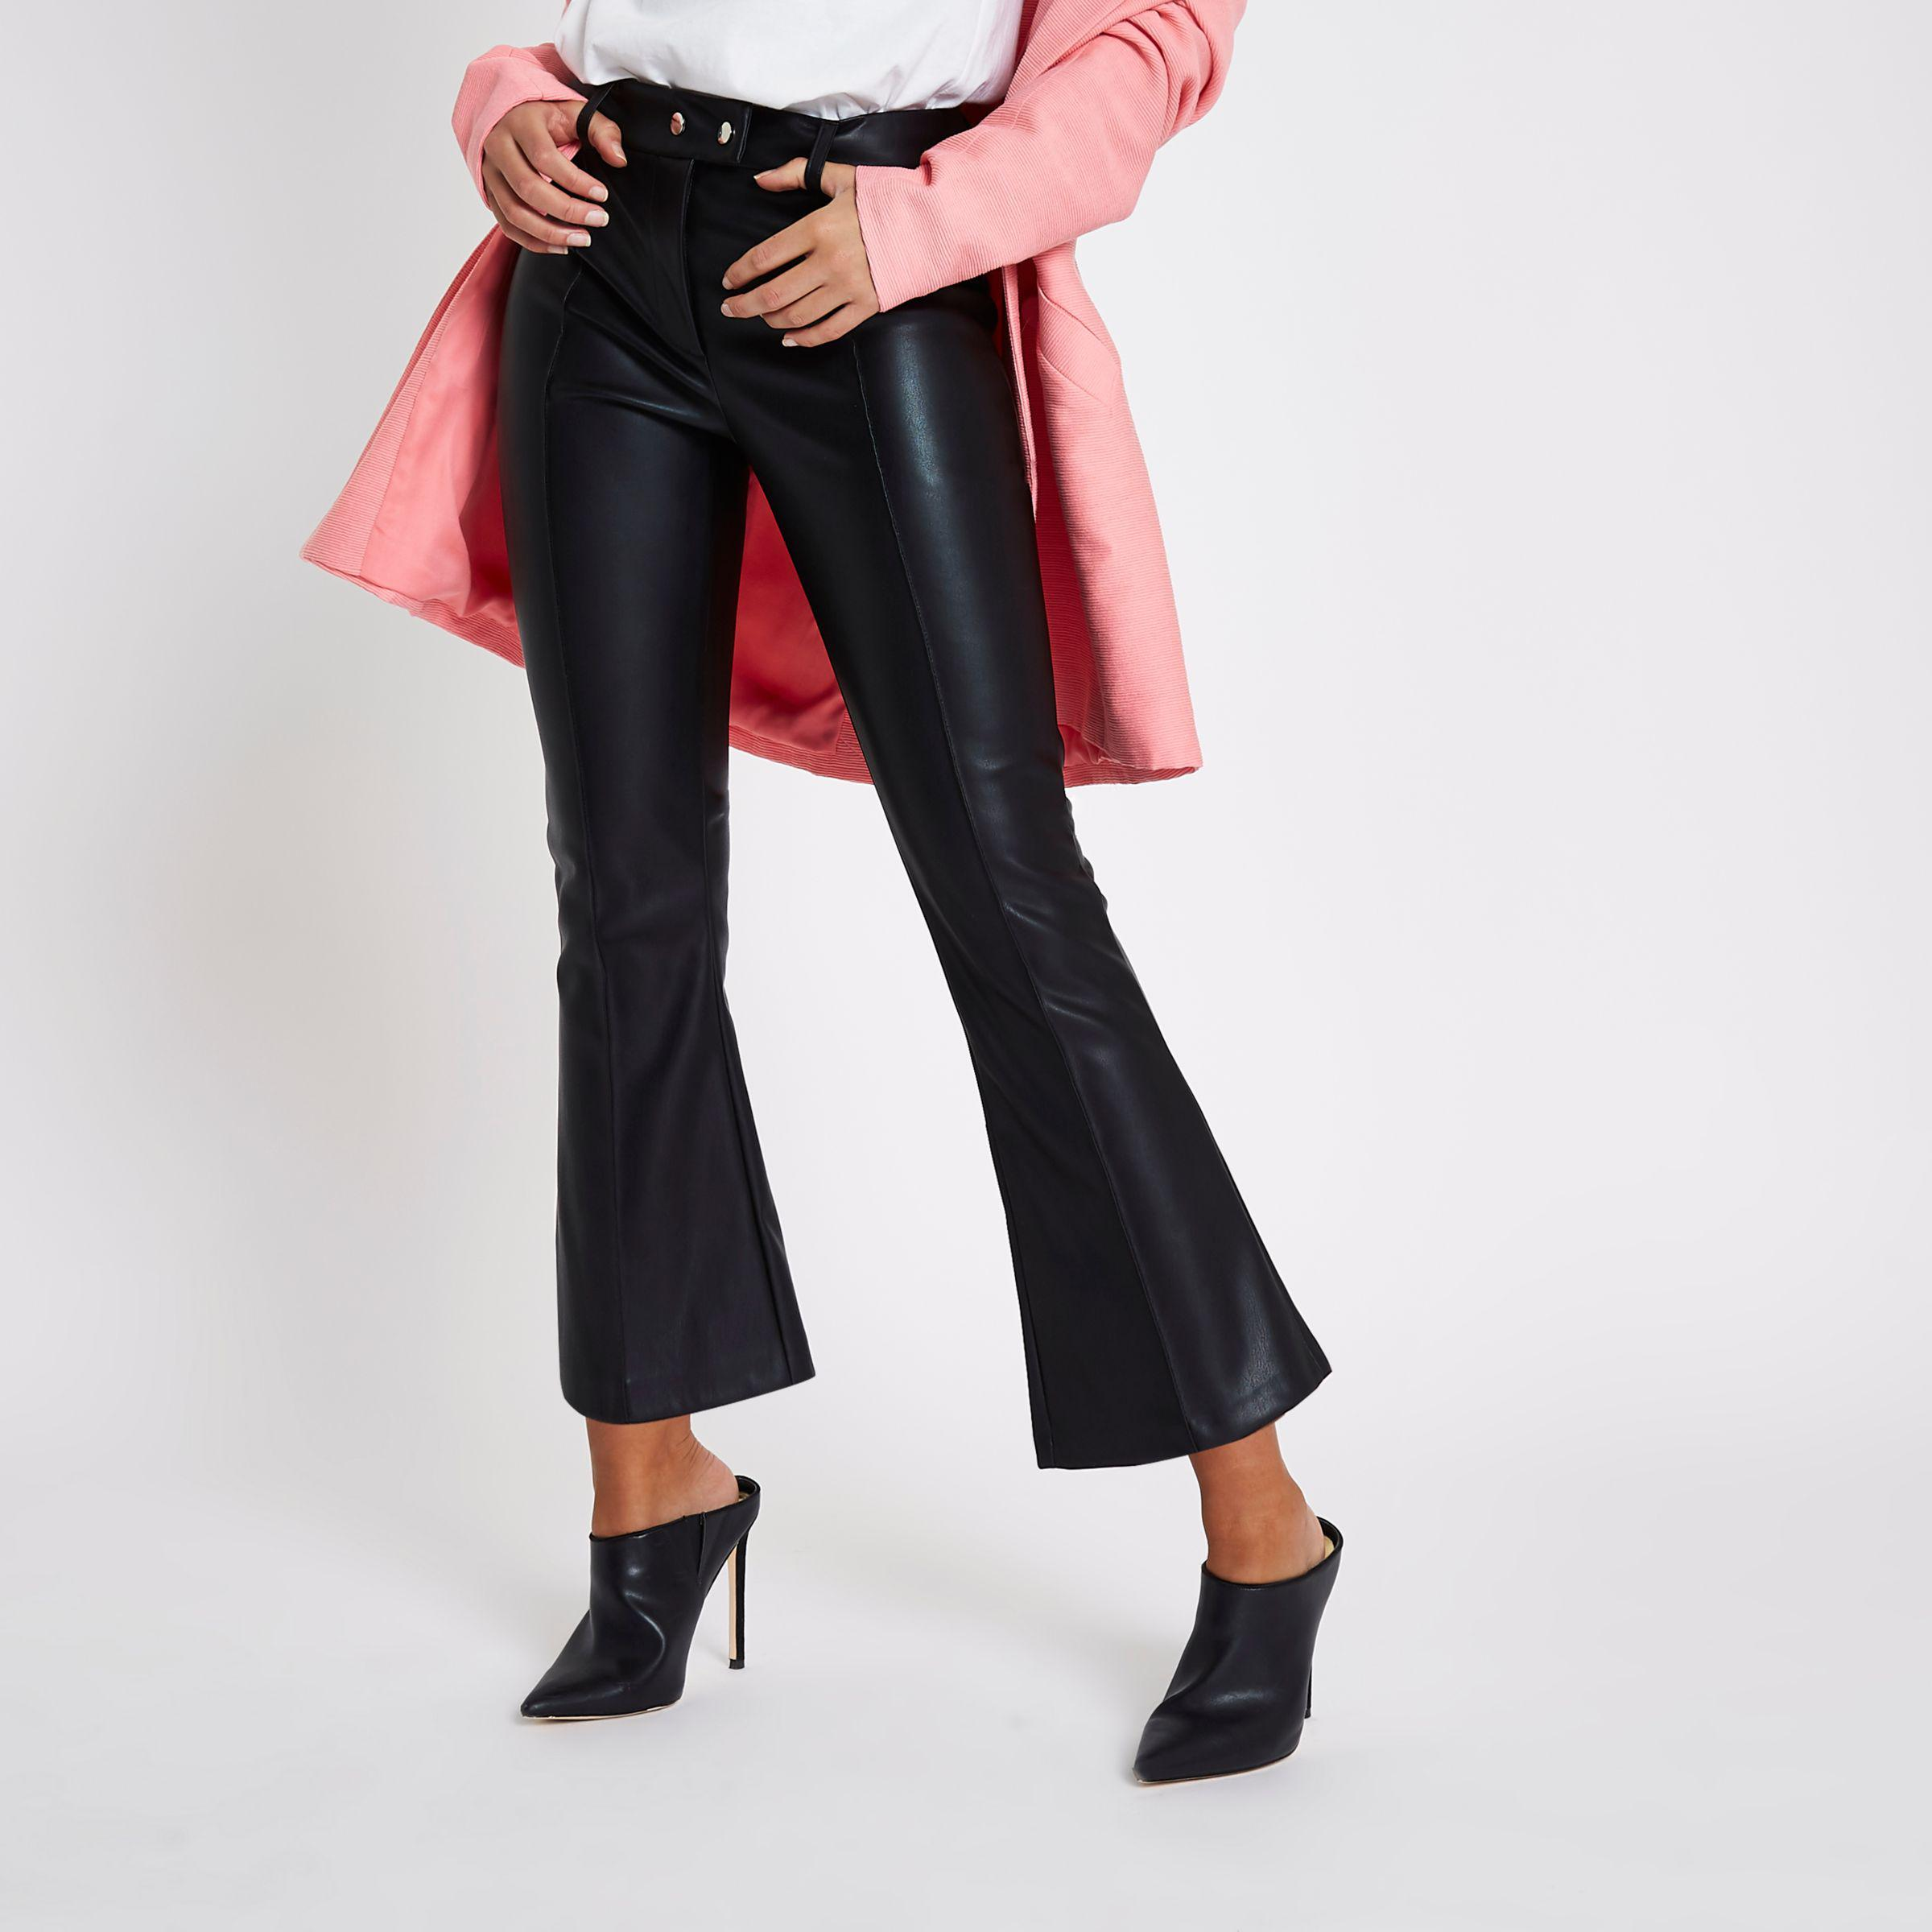 River Island Black Faux Leather Kick Flare Trousers   Lyst